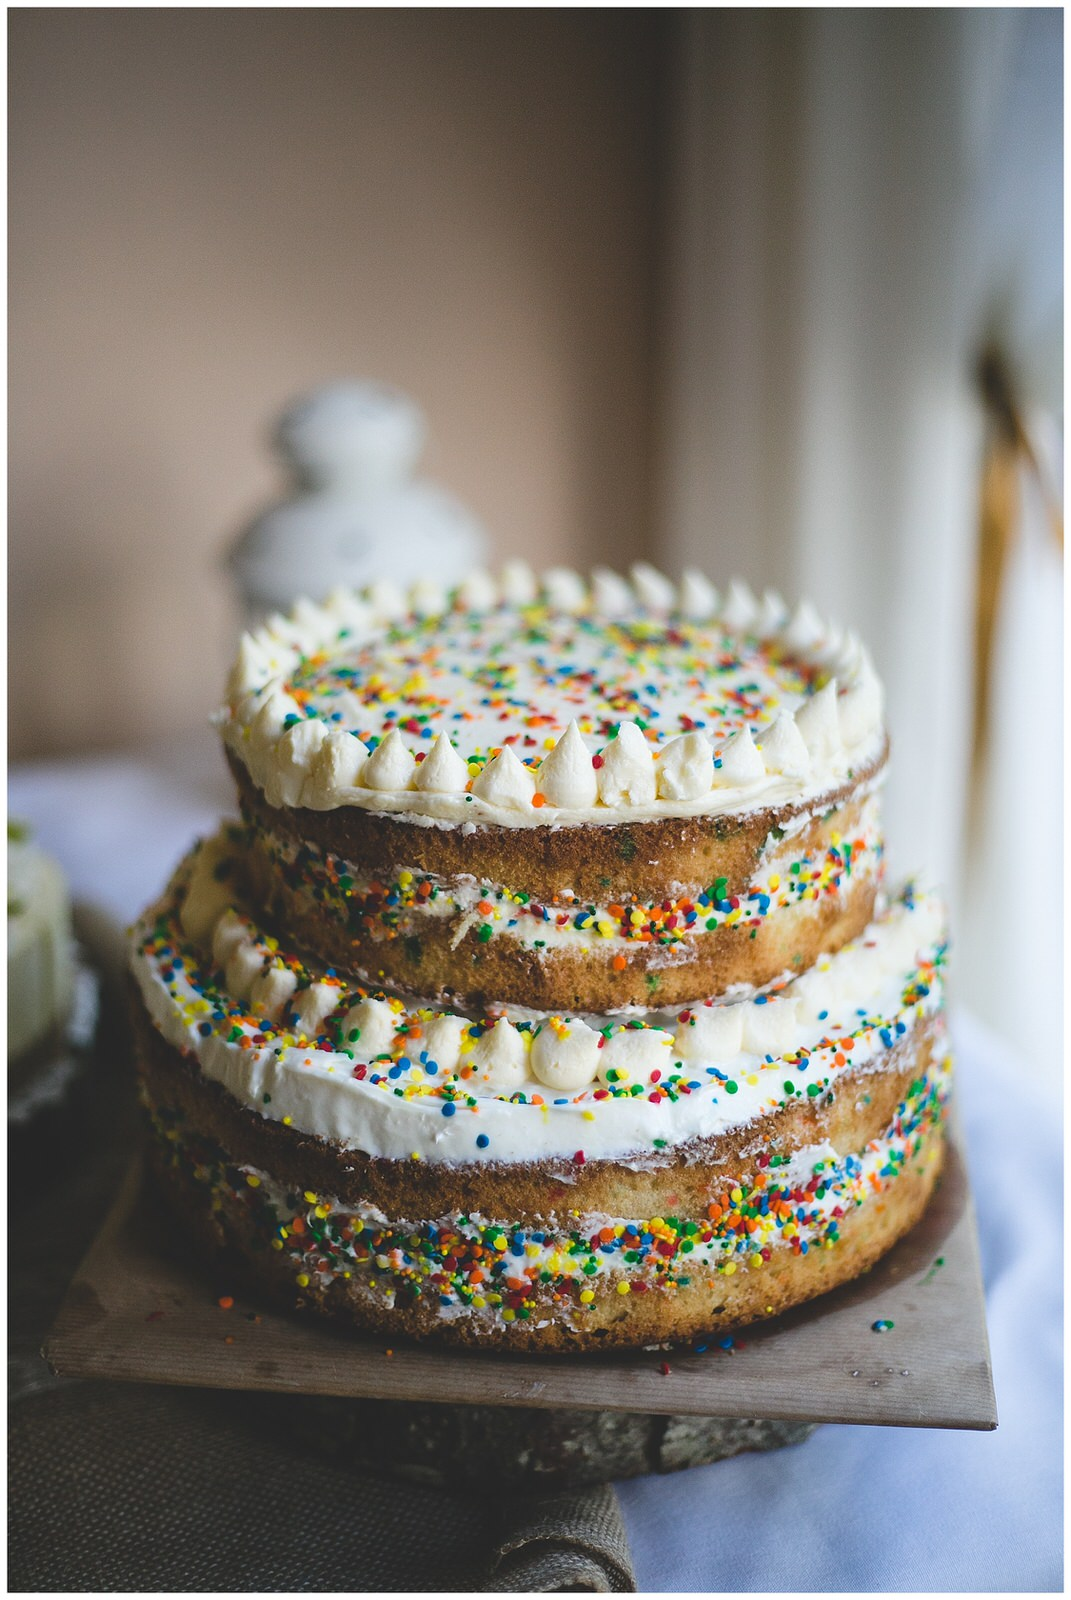 Natural raw buttercream iced cake decorated with sprinkles